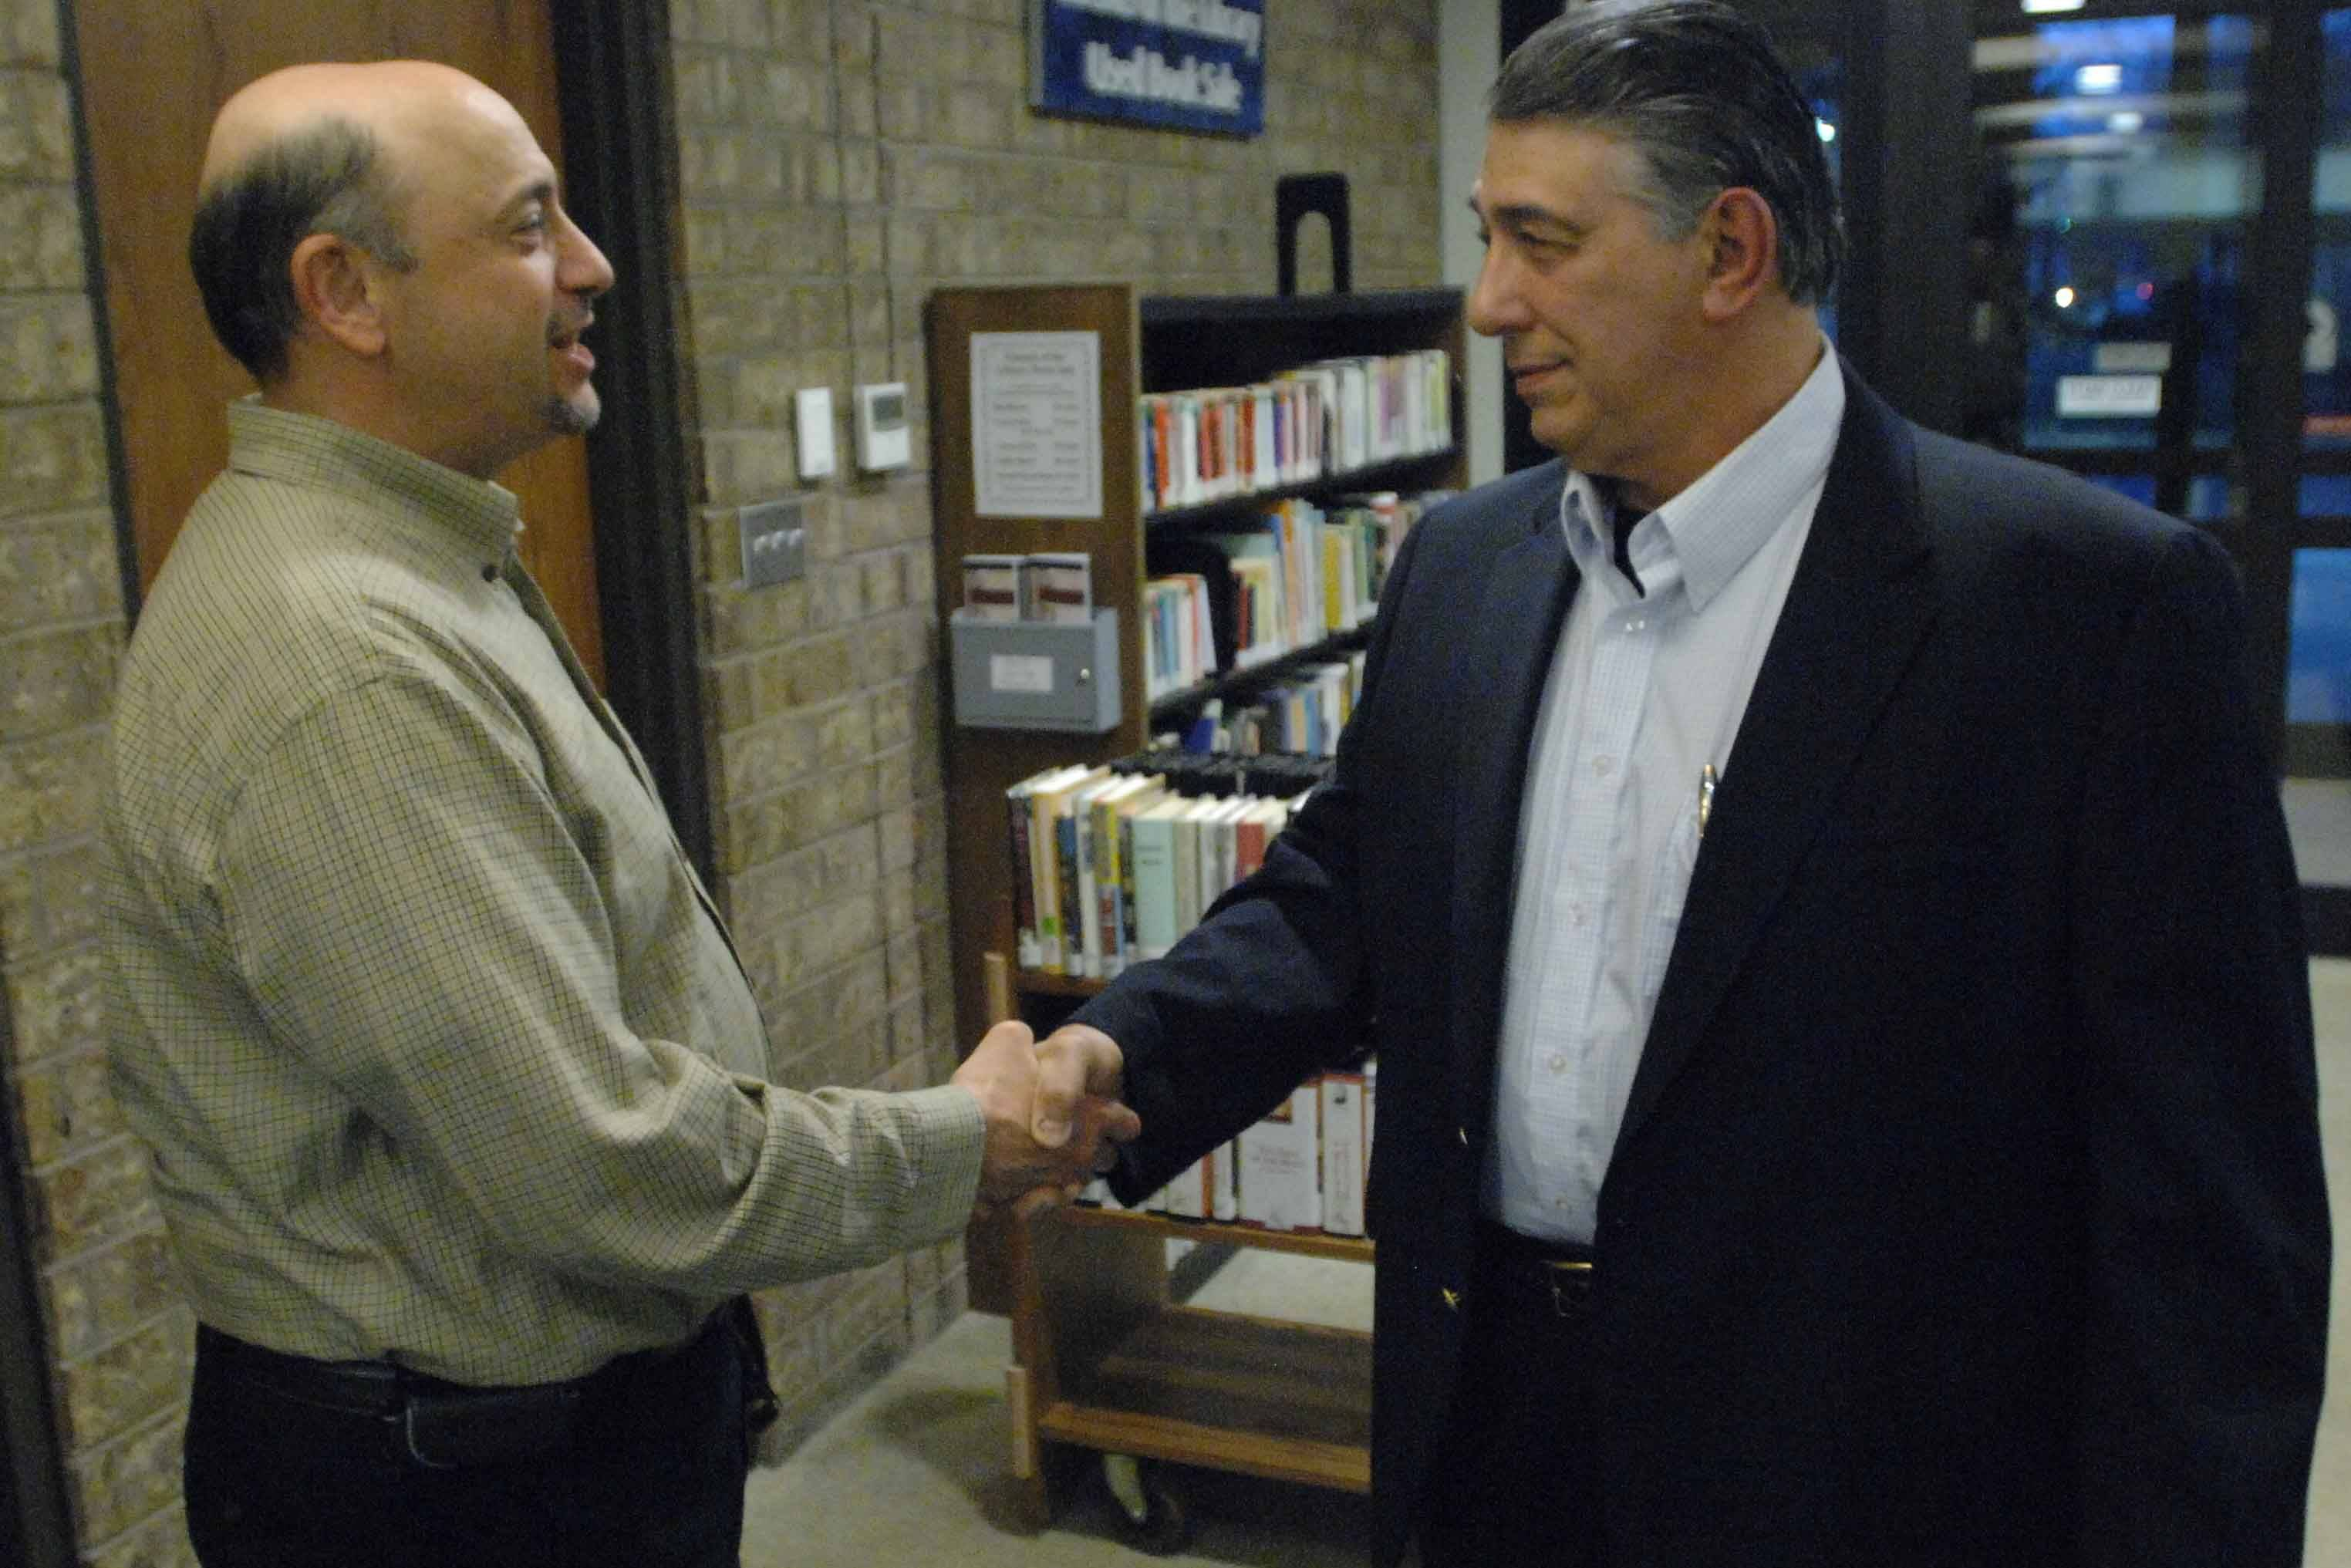 David DeRango, left, and Dominick Jeffrey shake hands before entering the Carol Stream Library's human resources meeting Wednesday.